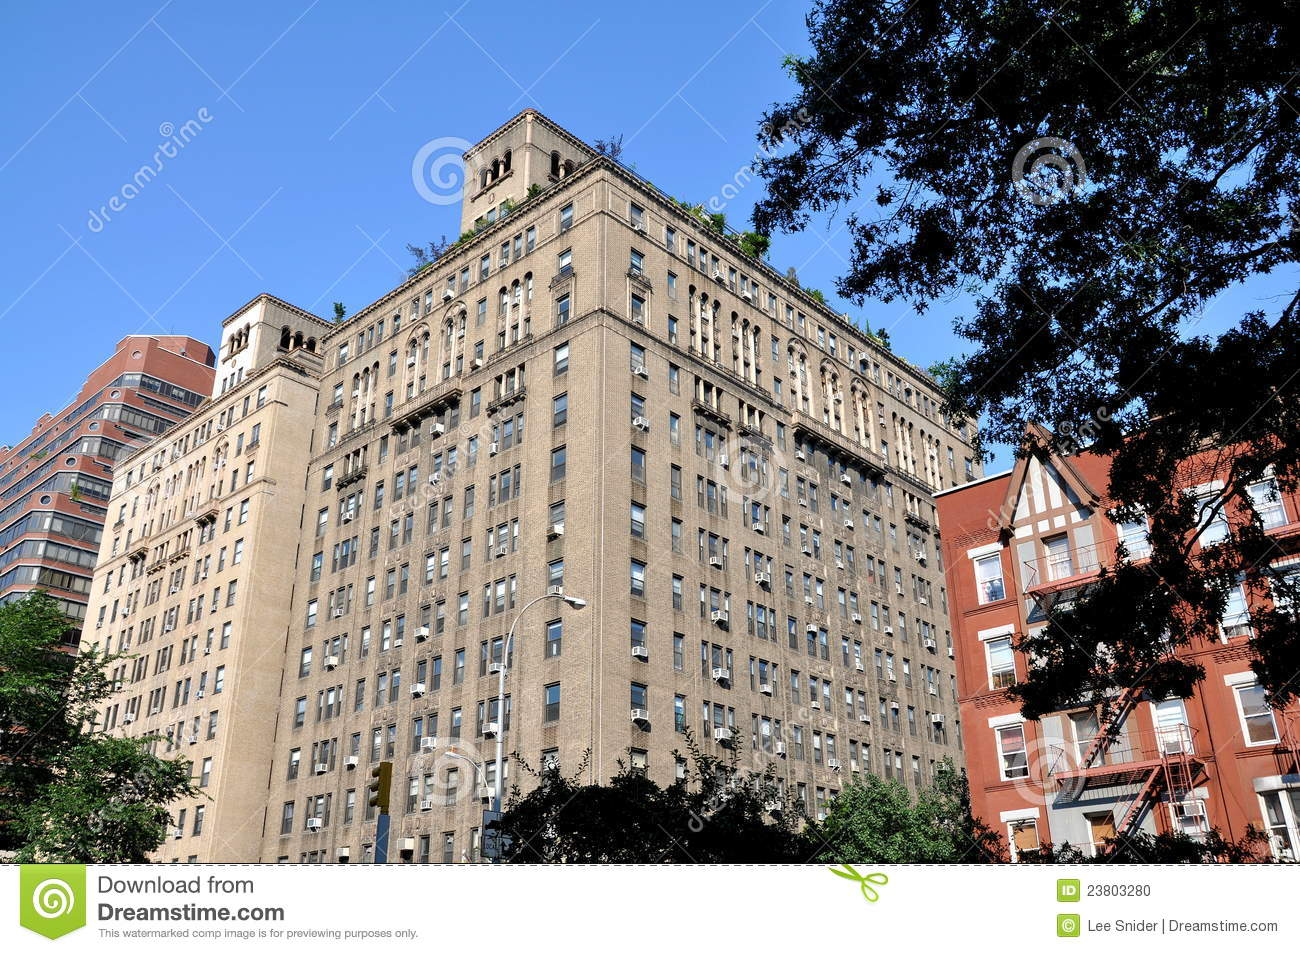 Nyc upper west side luxury co op building stock photo for Upper west side apartments nyc